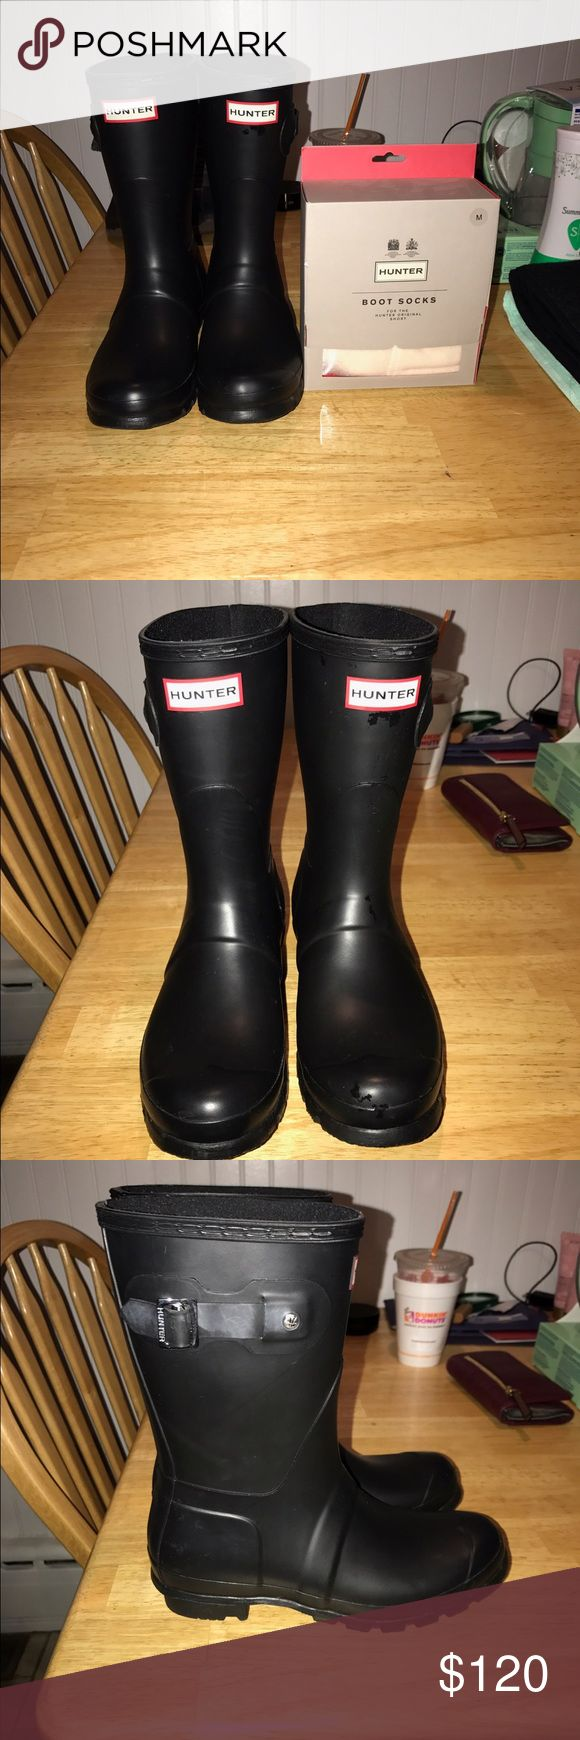 Too big, only wore them once Hunter matte black original short rain boots size 7 women's with creme fleece size medium boot socks, worn once Hunter Shoes Winter & Rain Boots